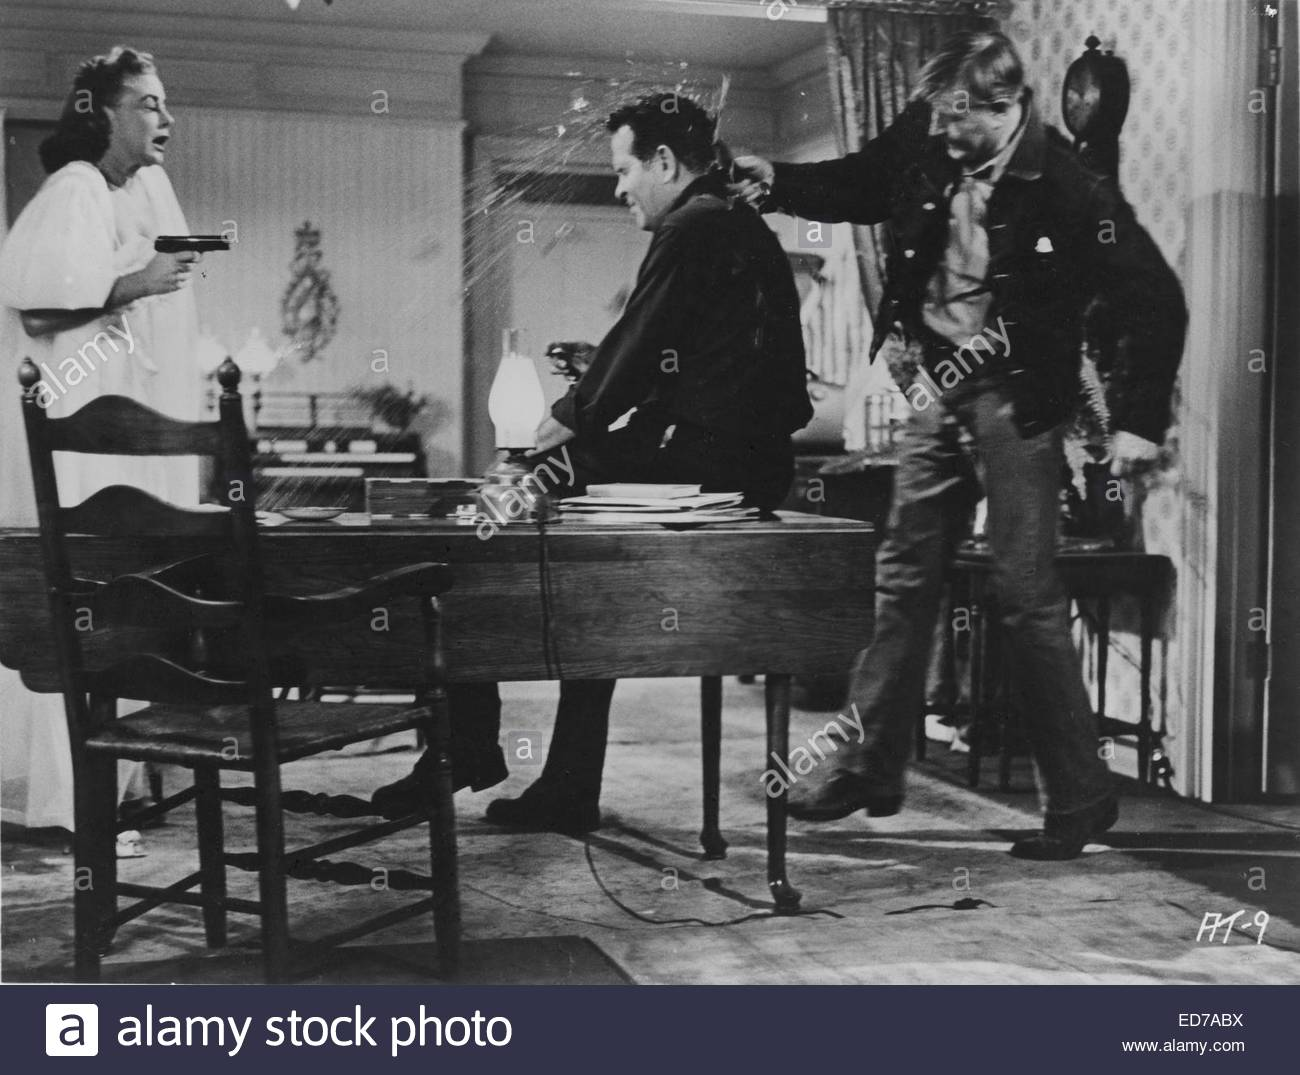 THE AMAZING TRANSPARENT MAN  (1959) starring Marguerite Chapman, Douglas Kennedy  - Courtesy Granamour Weems Collection. - Stock Image